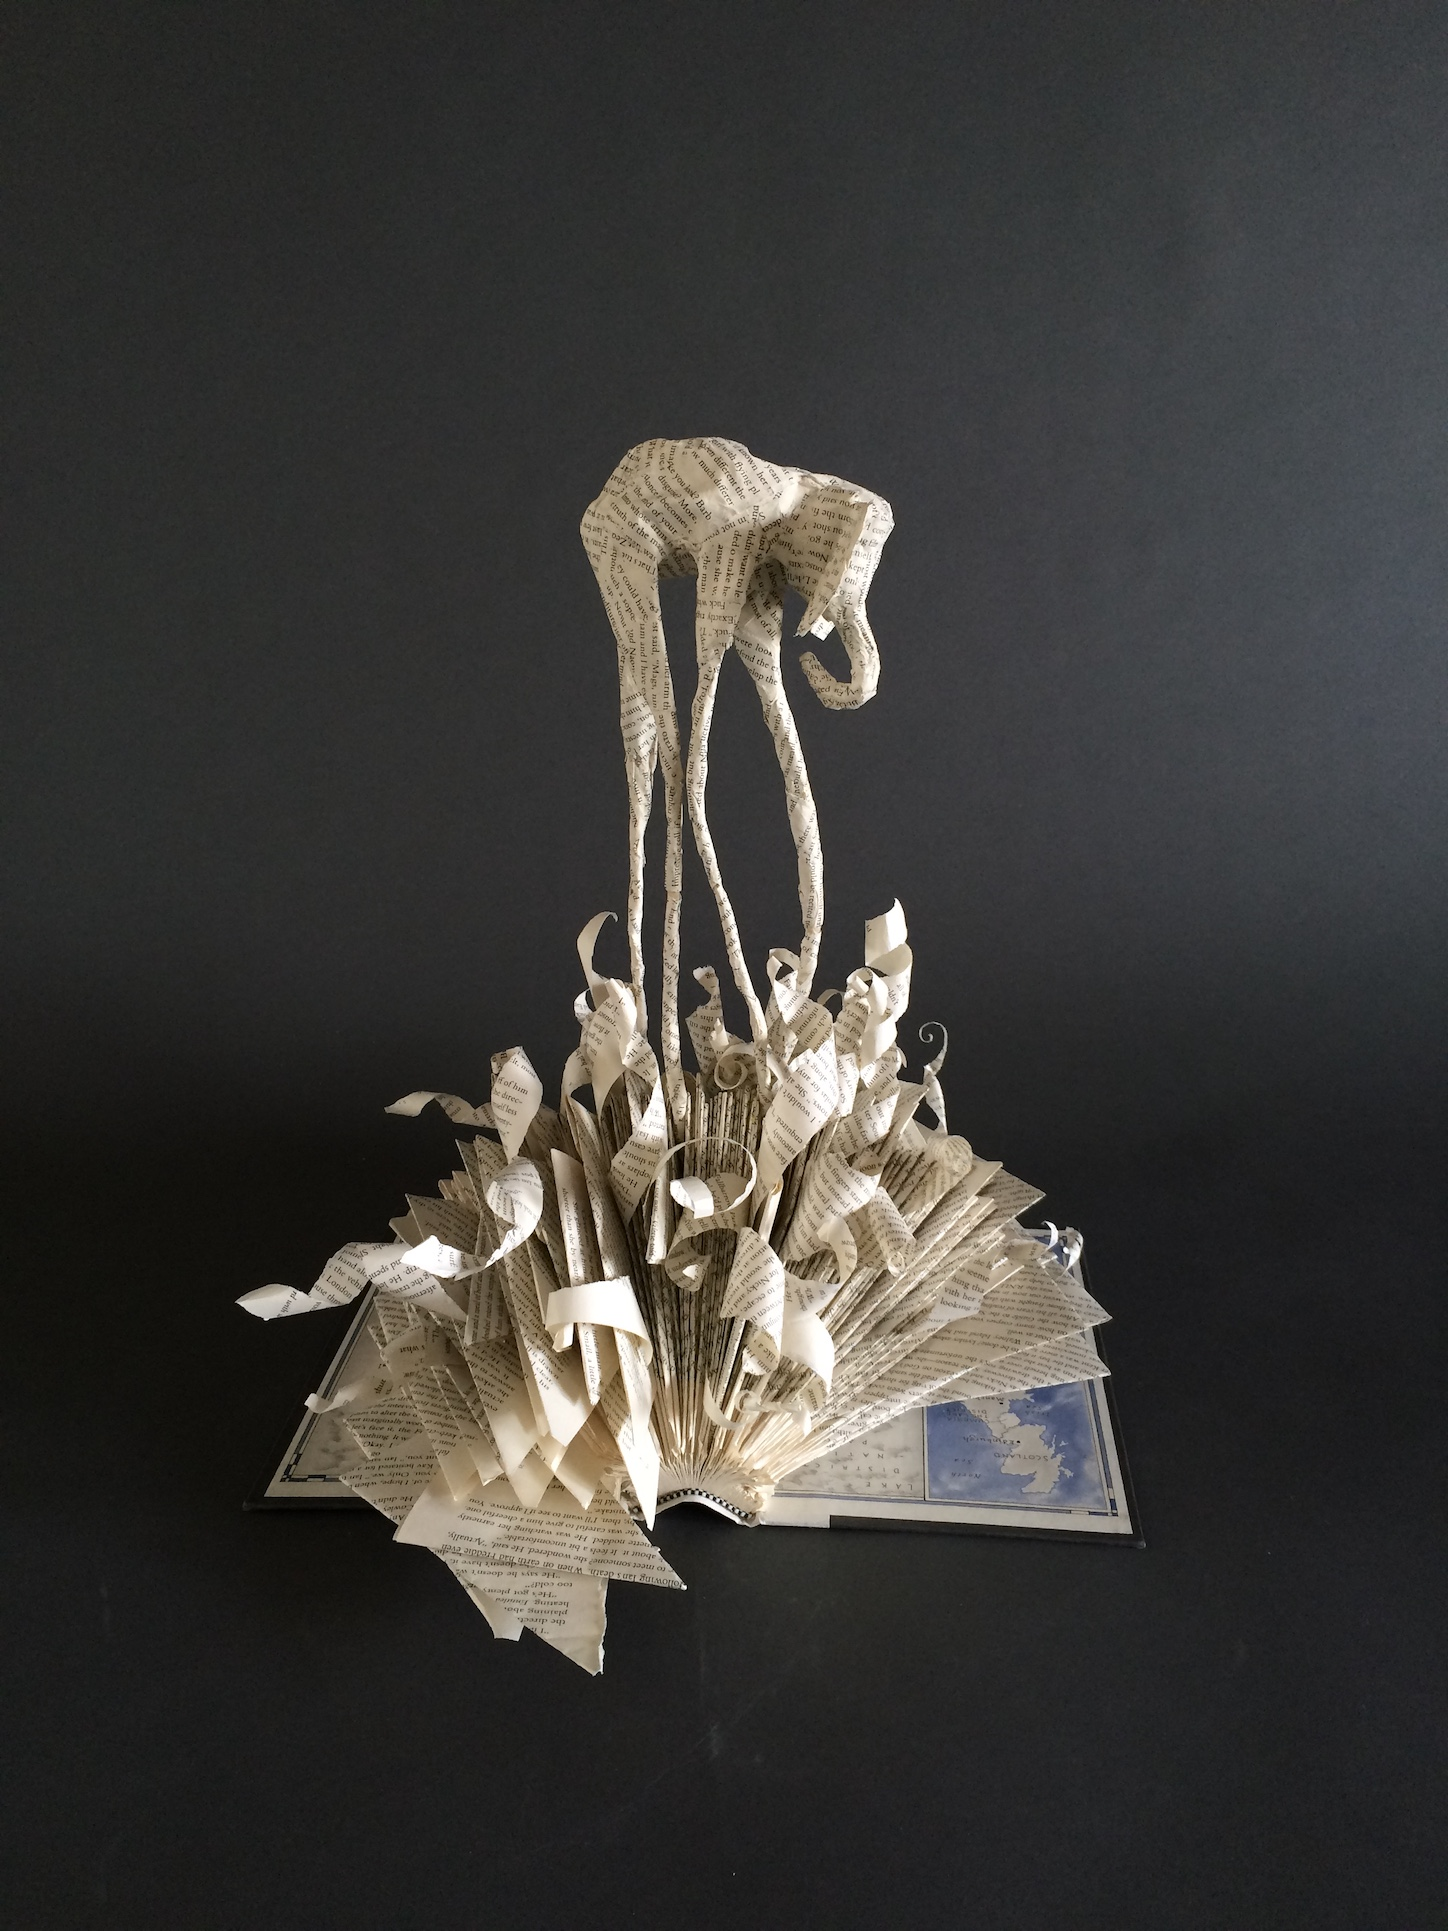 salvador dali book sculpture